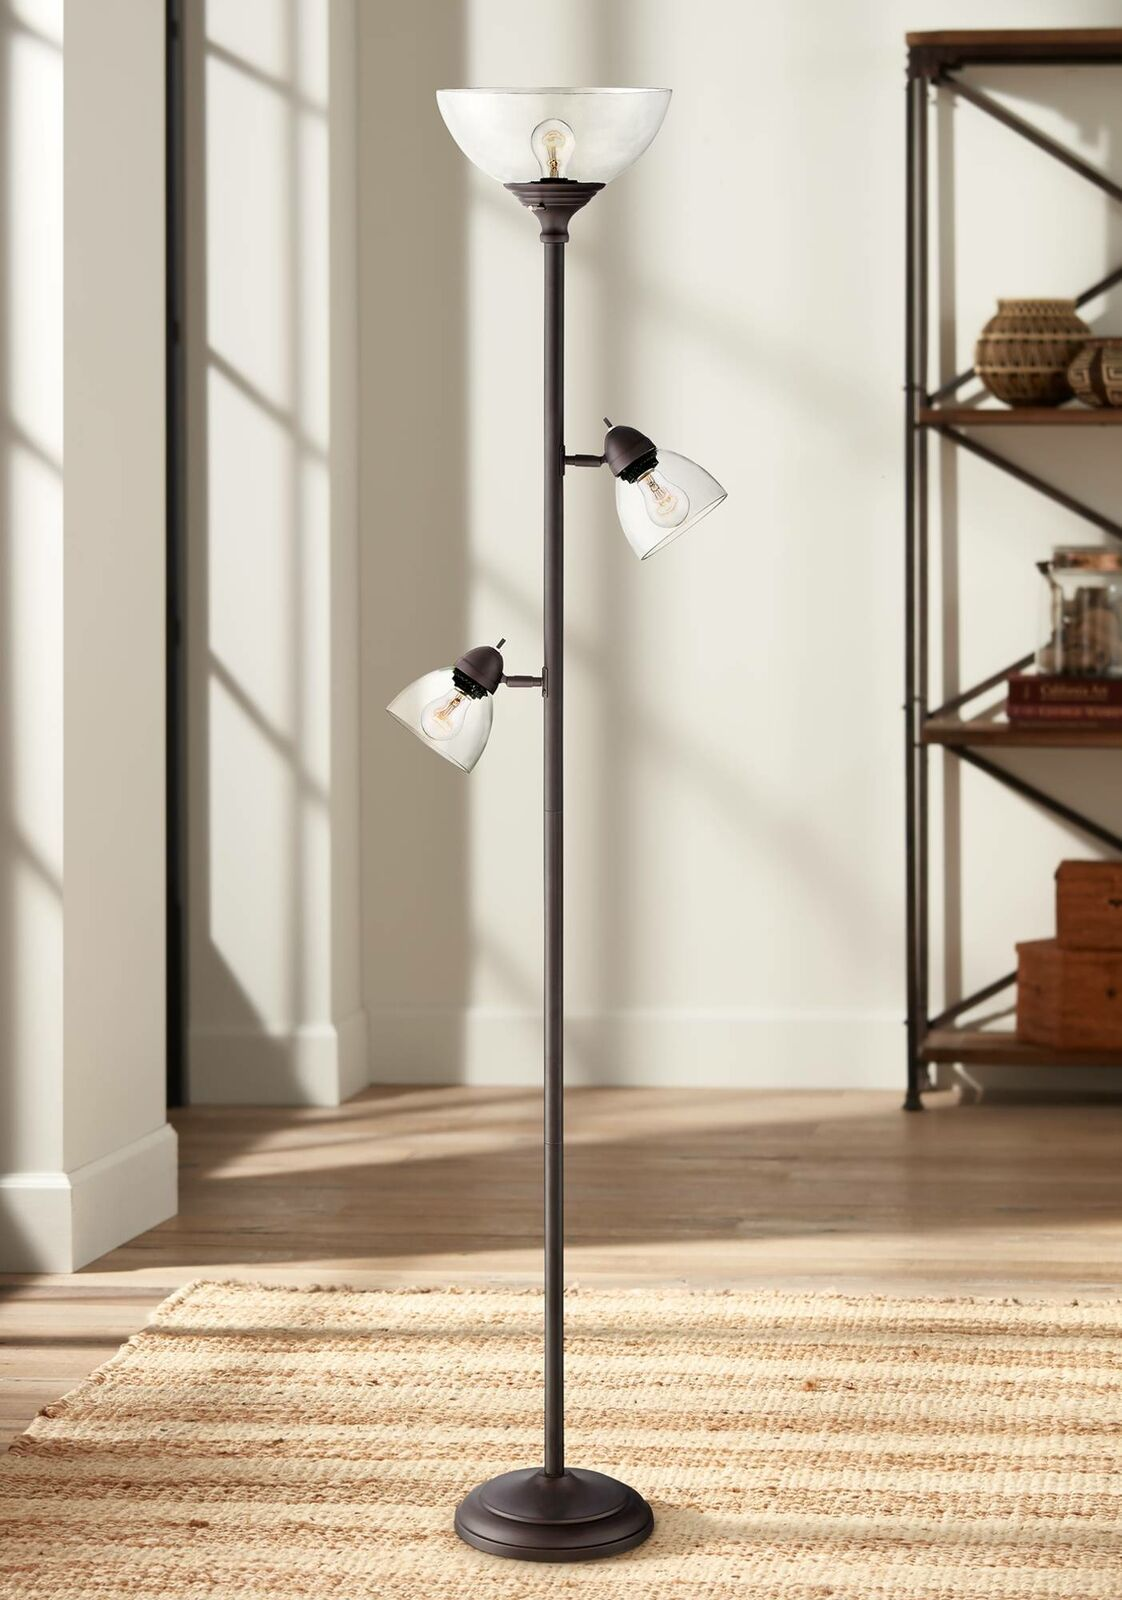 Details About Modern Torchiere Floor Lamp 3 Light Tree Bronze Glass For Living Room Reading